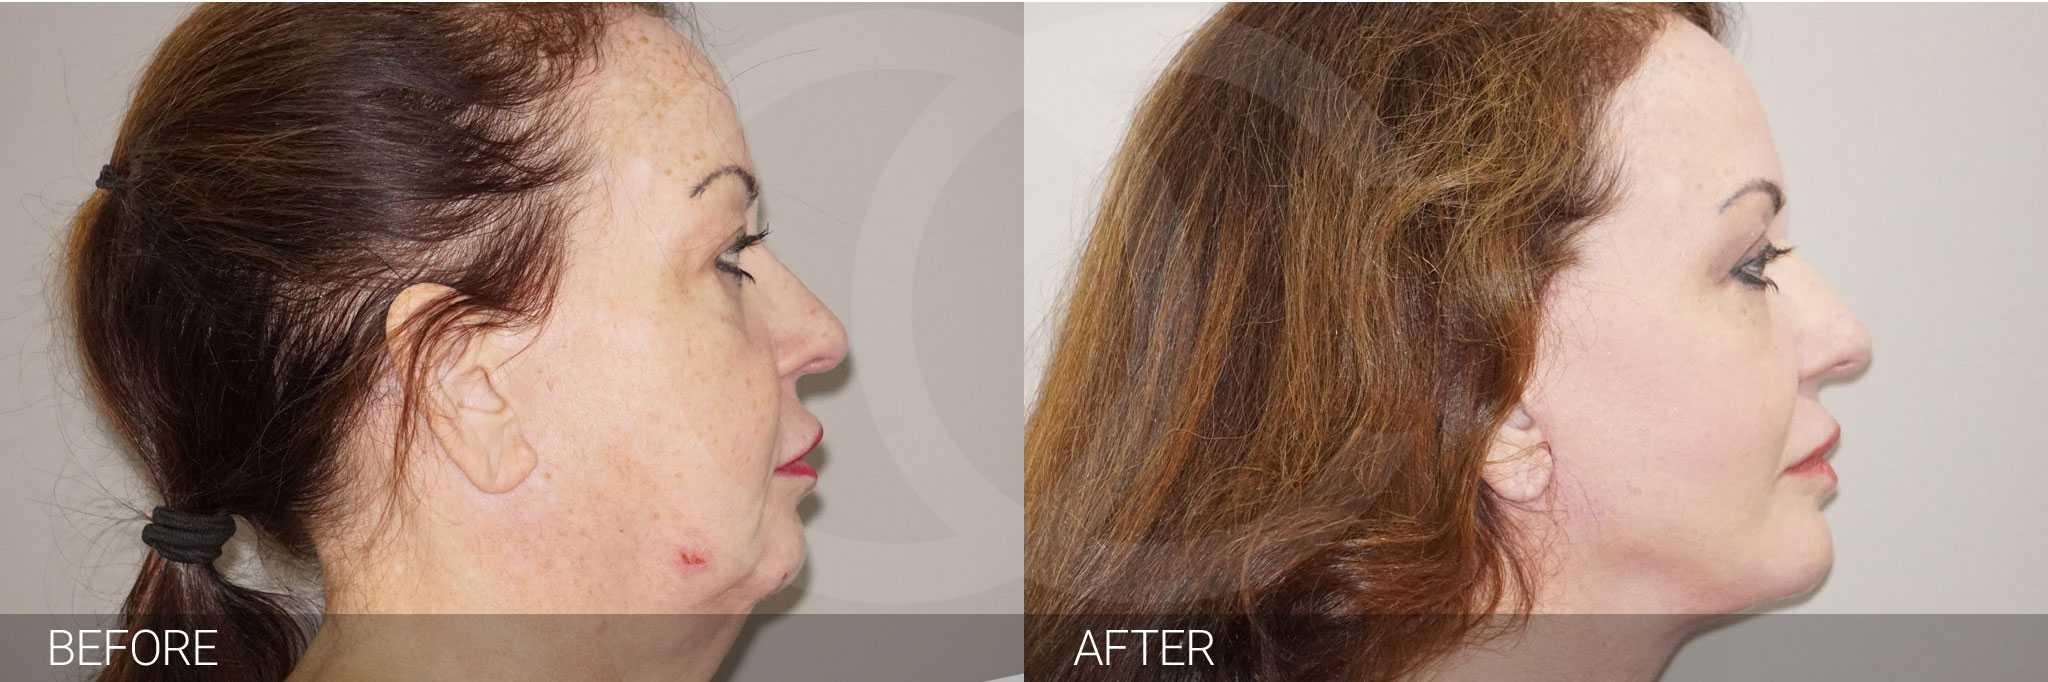 Facial Fat Grafting Facelift and Necklift ante/post-op III